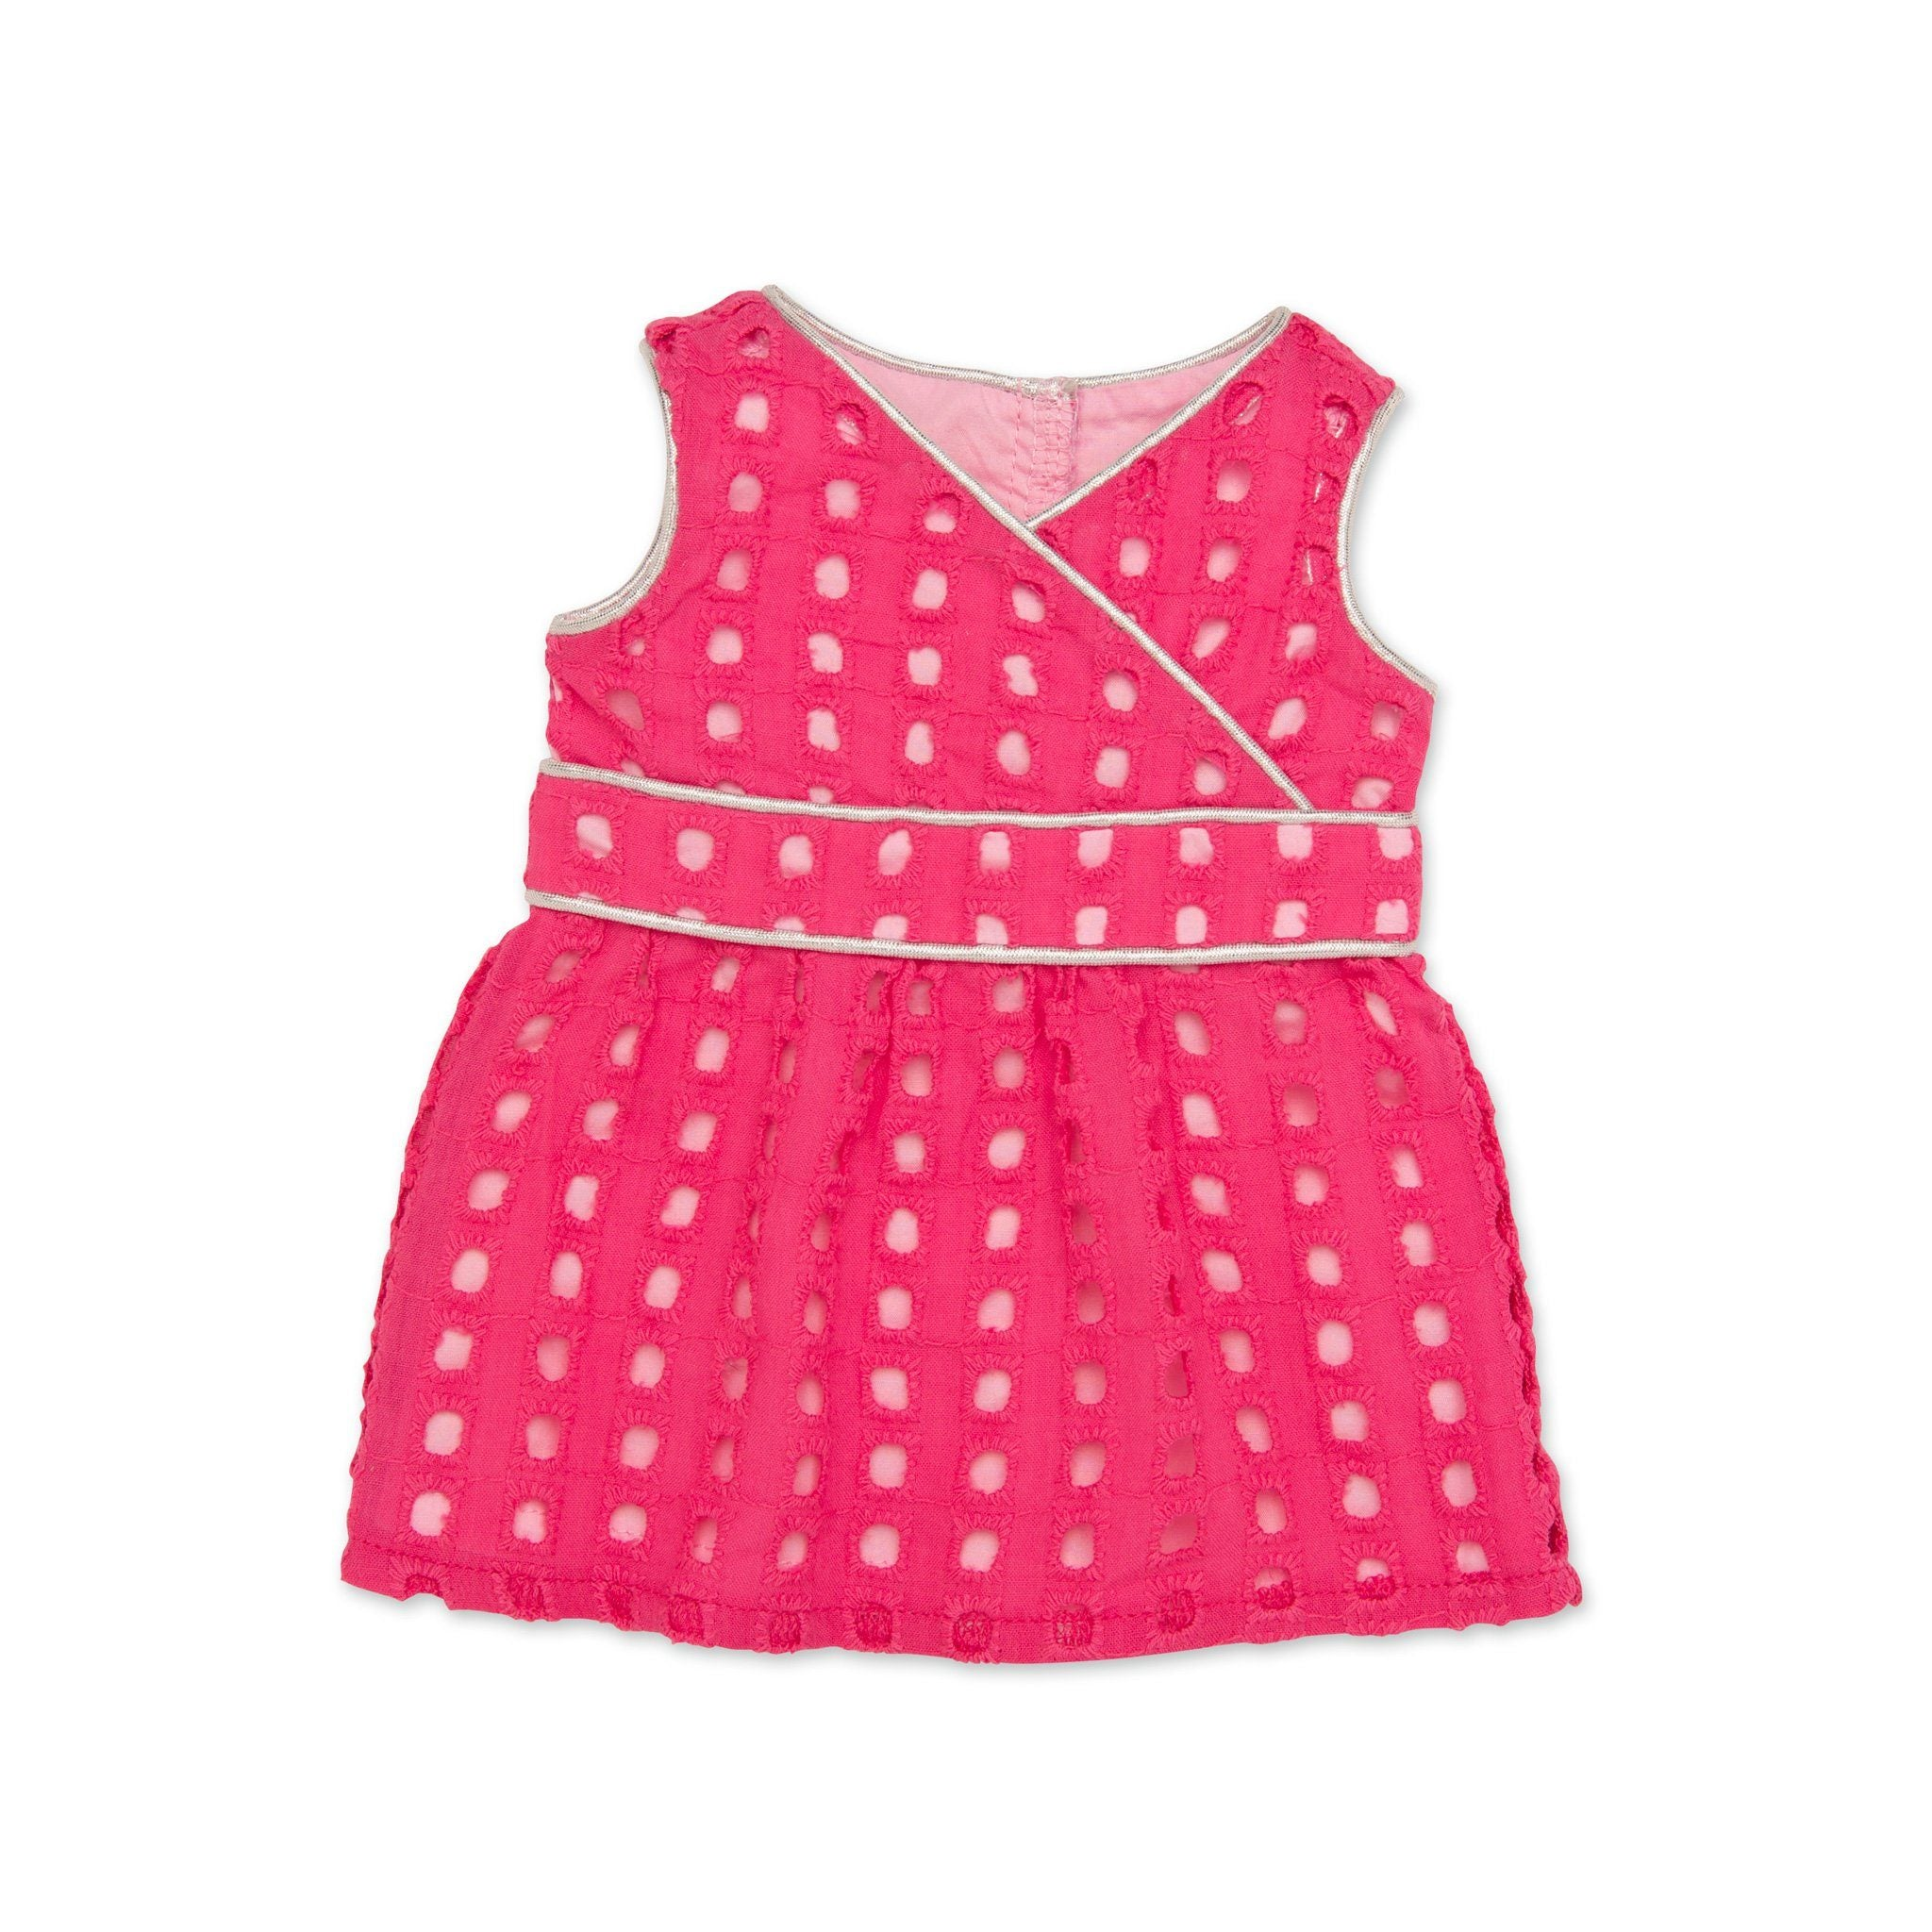 Pink eyelet dress with silver piping fits all 18 inch dolls.